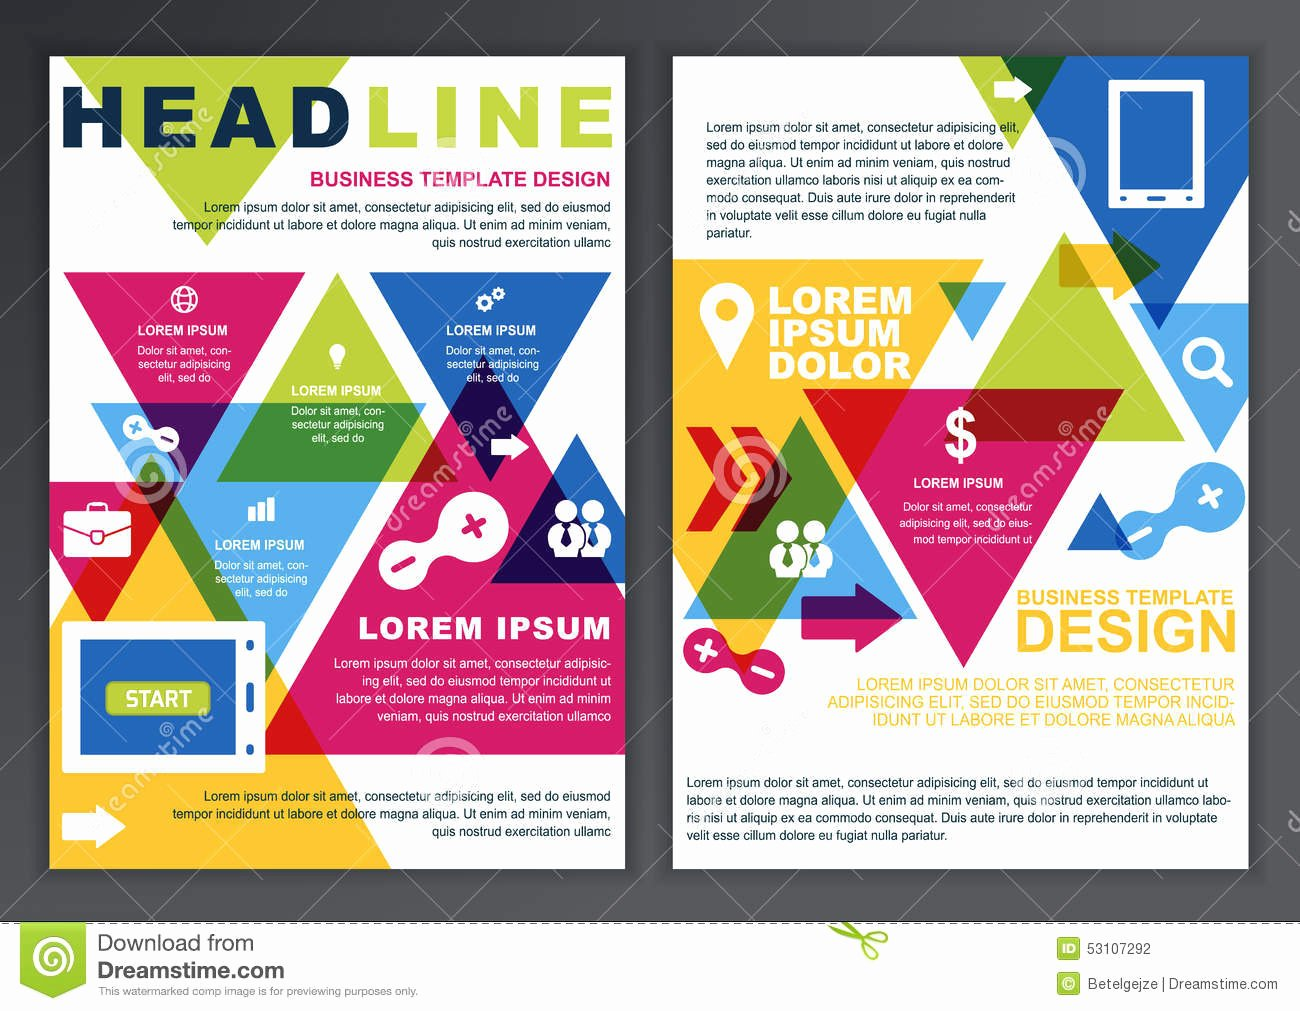 Set Vector Design Template for Business Brochure